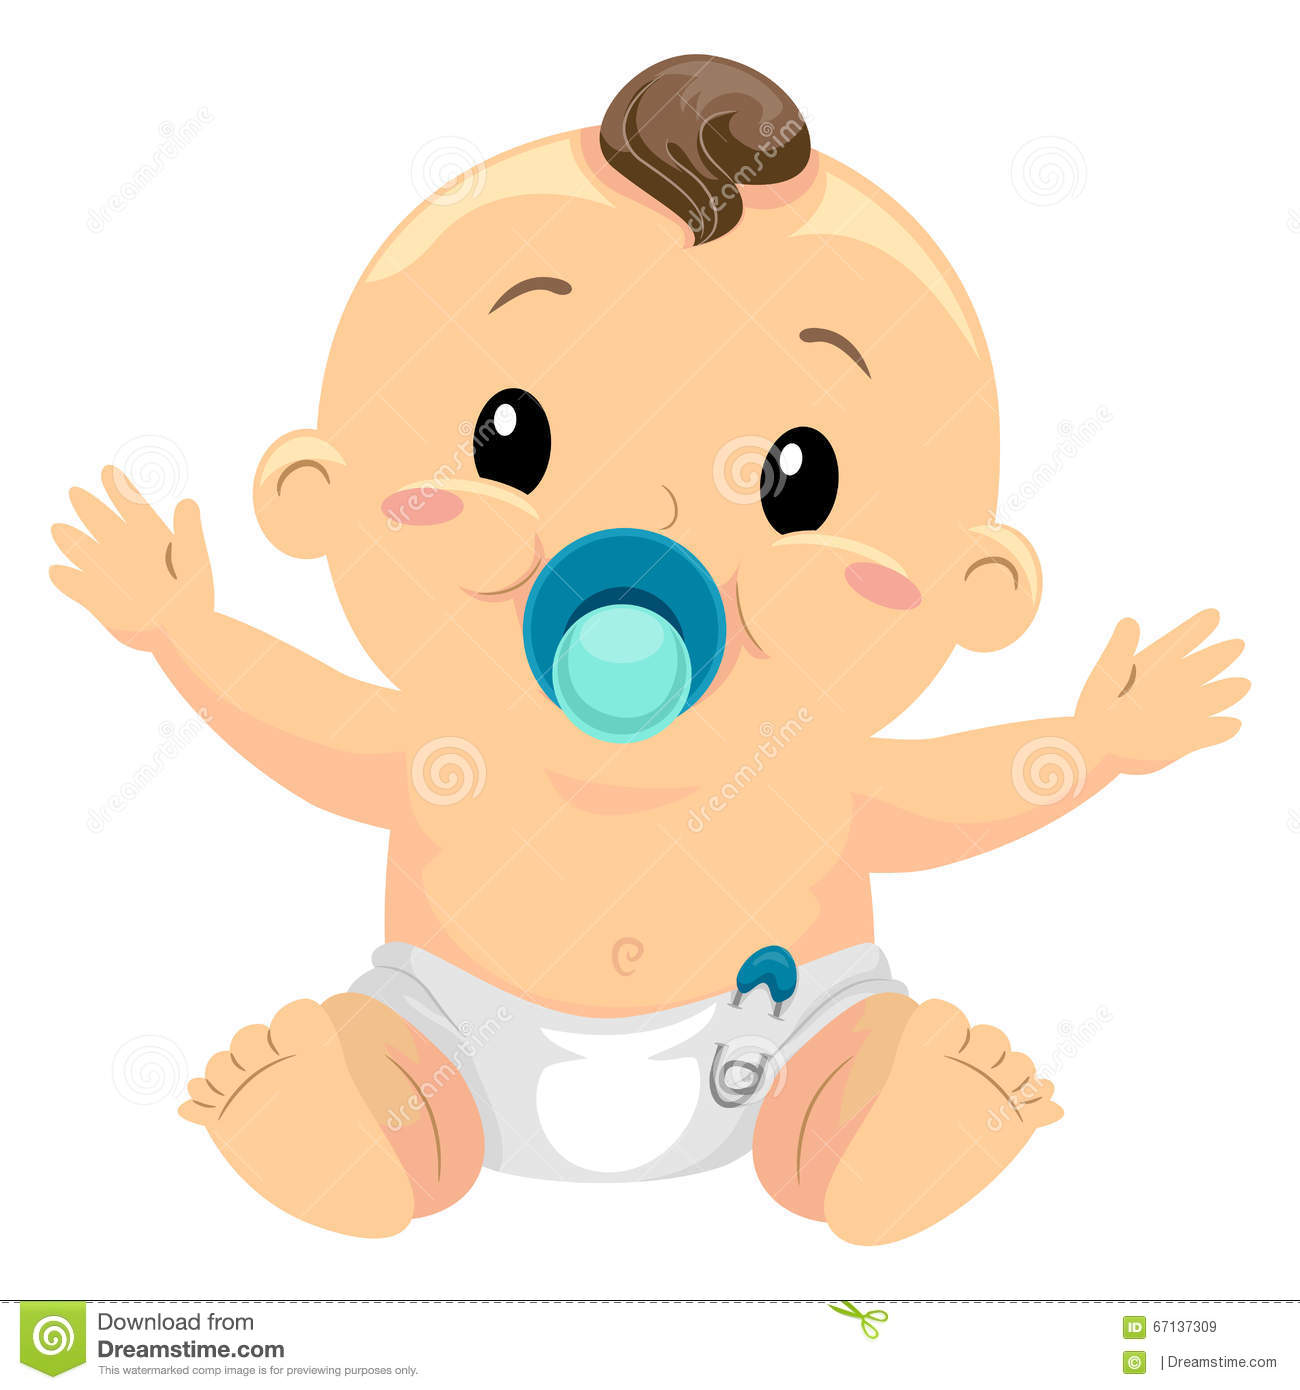 936 Pacifier free clipart.